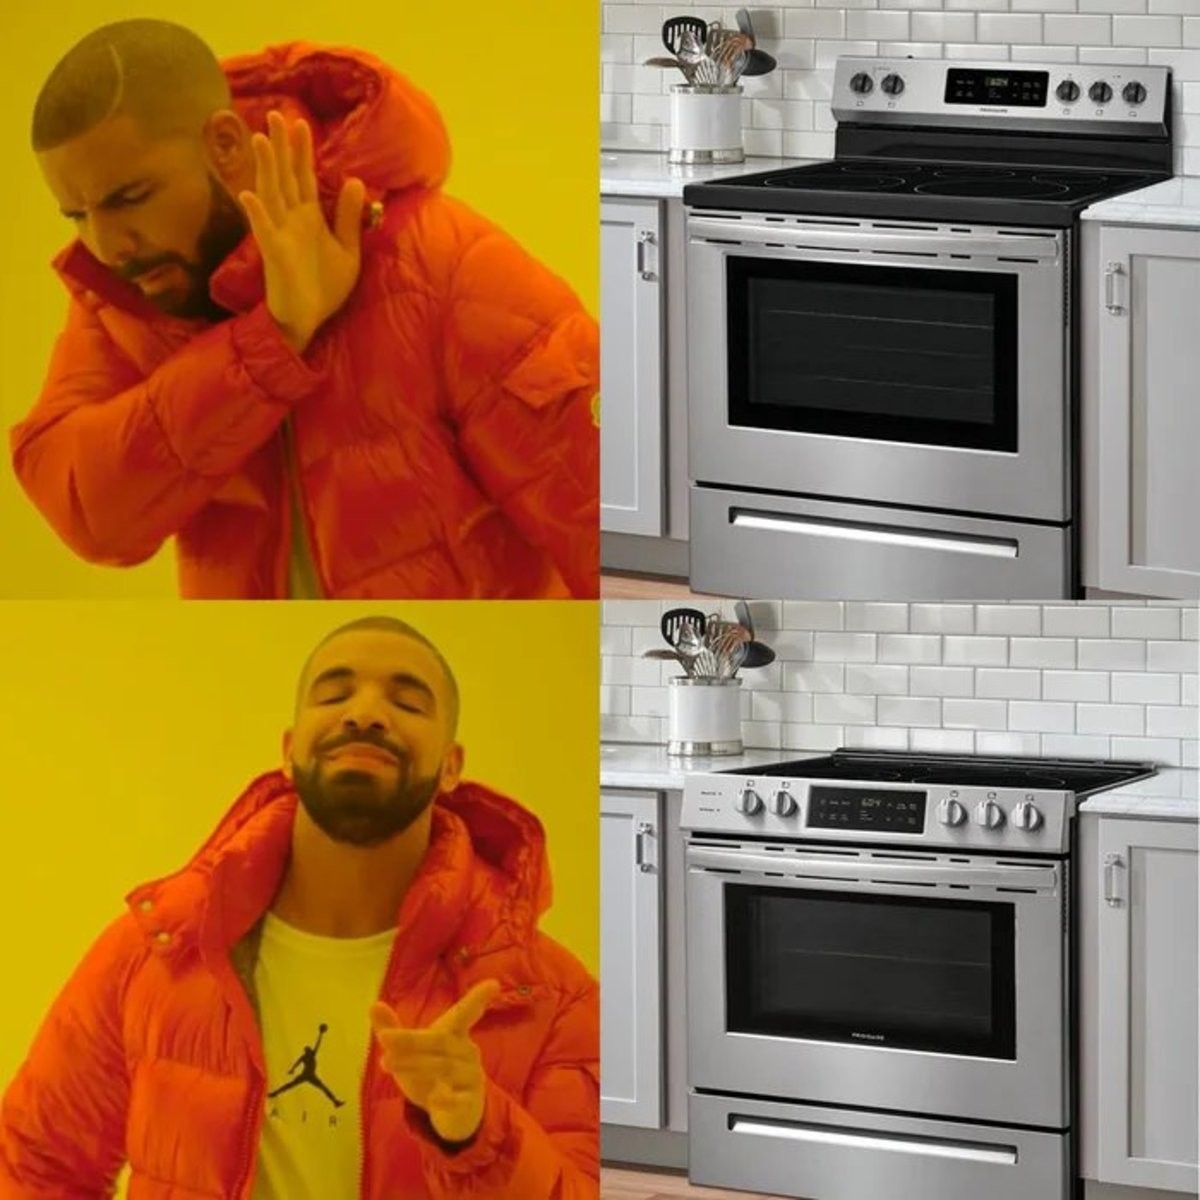 whose idea was this. who wants to reach over the hot pots and pans to reach the controls.. I'm not a manlet, so I don't have that problem.